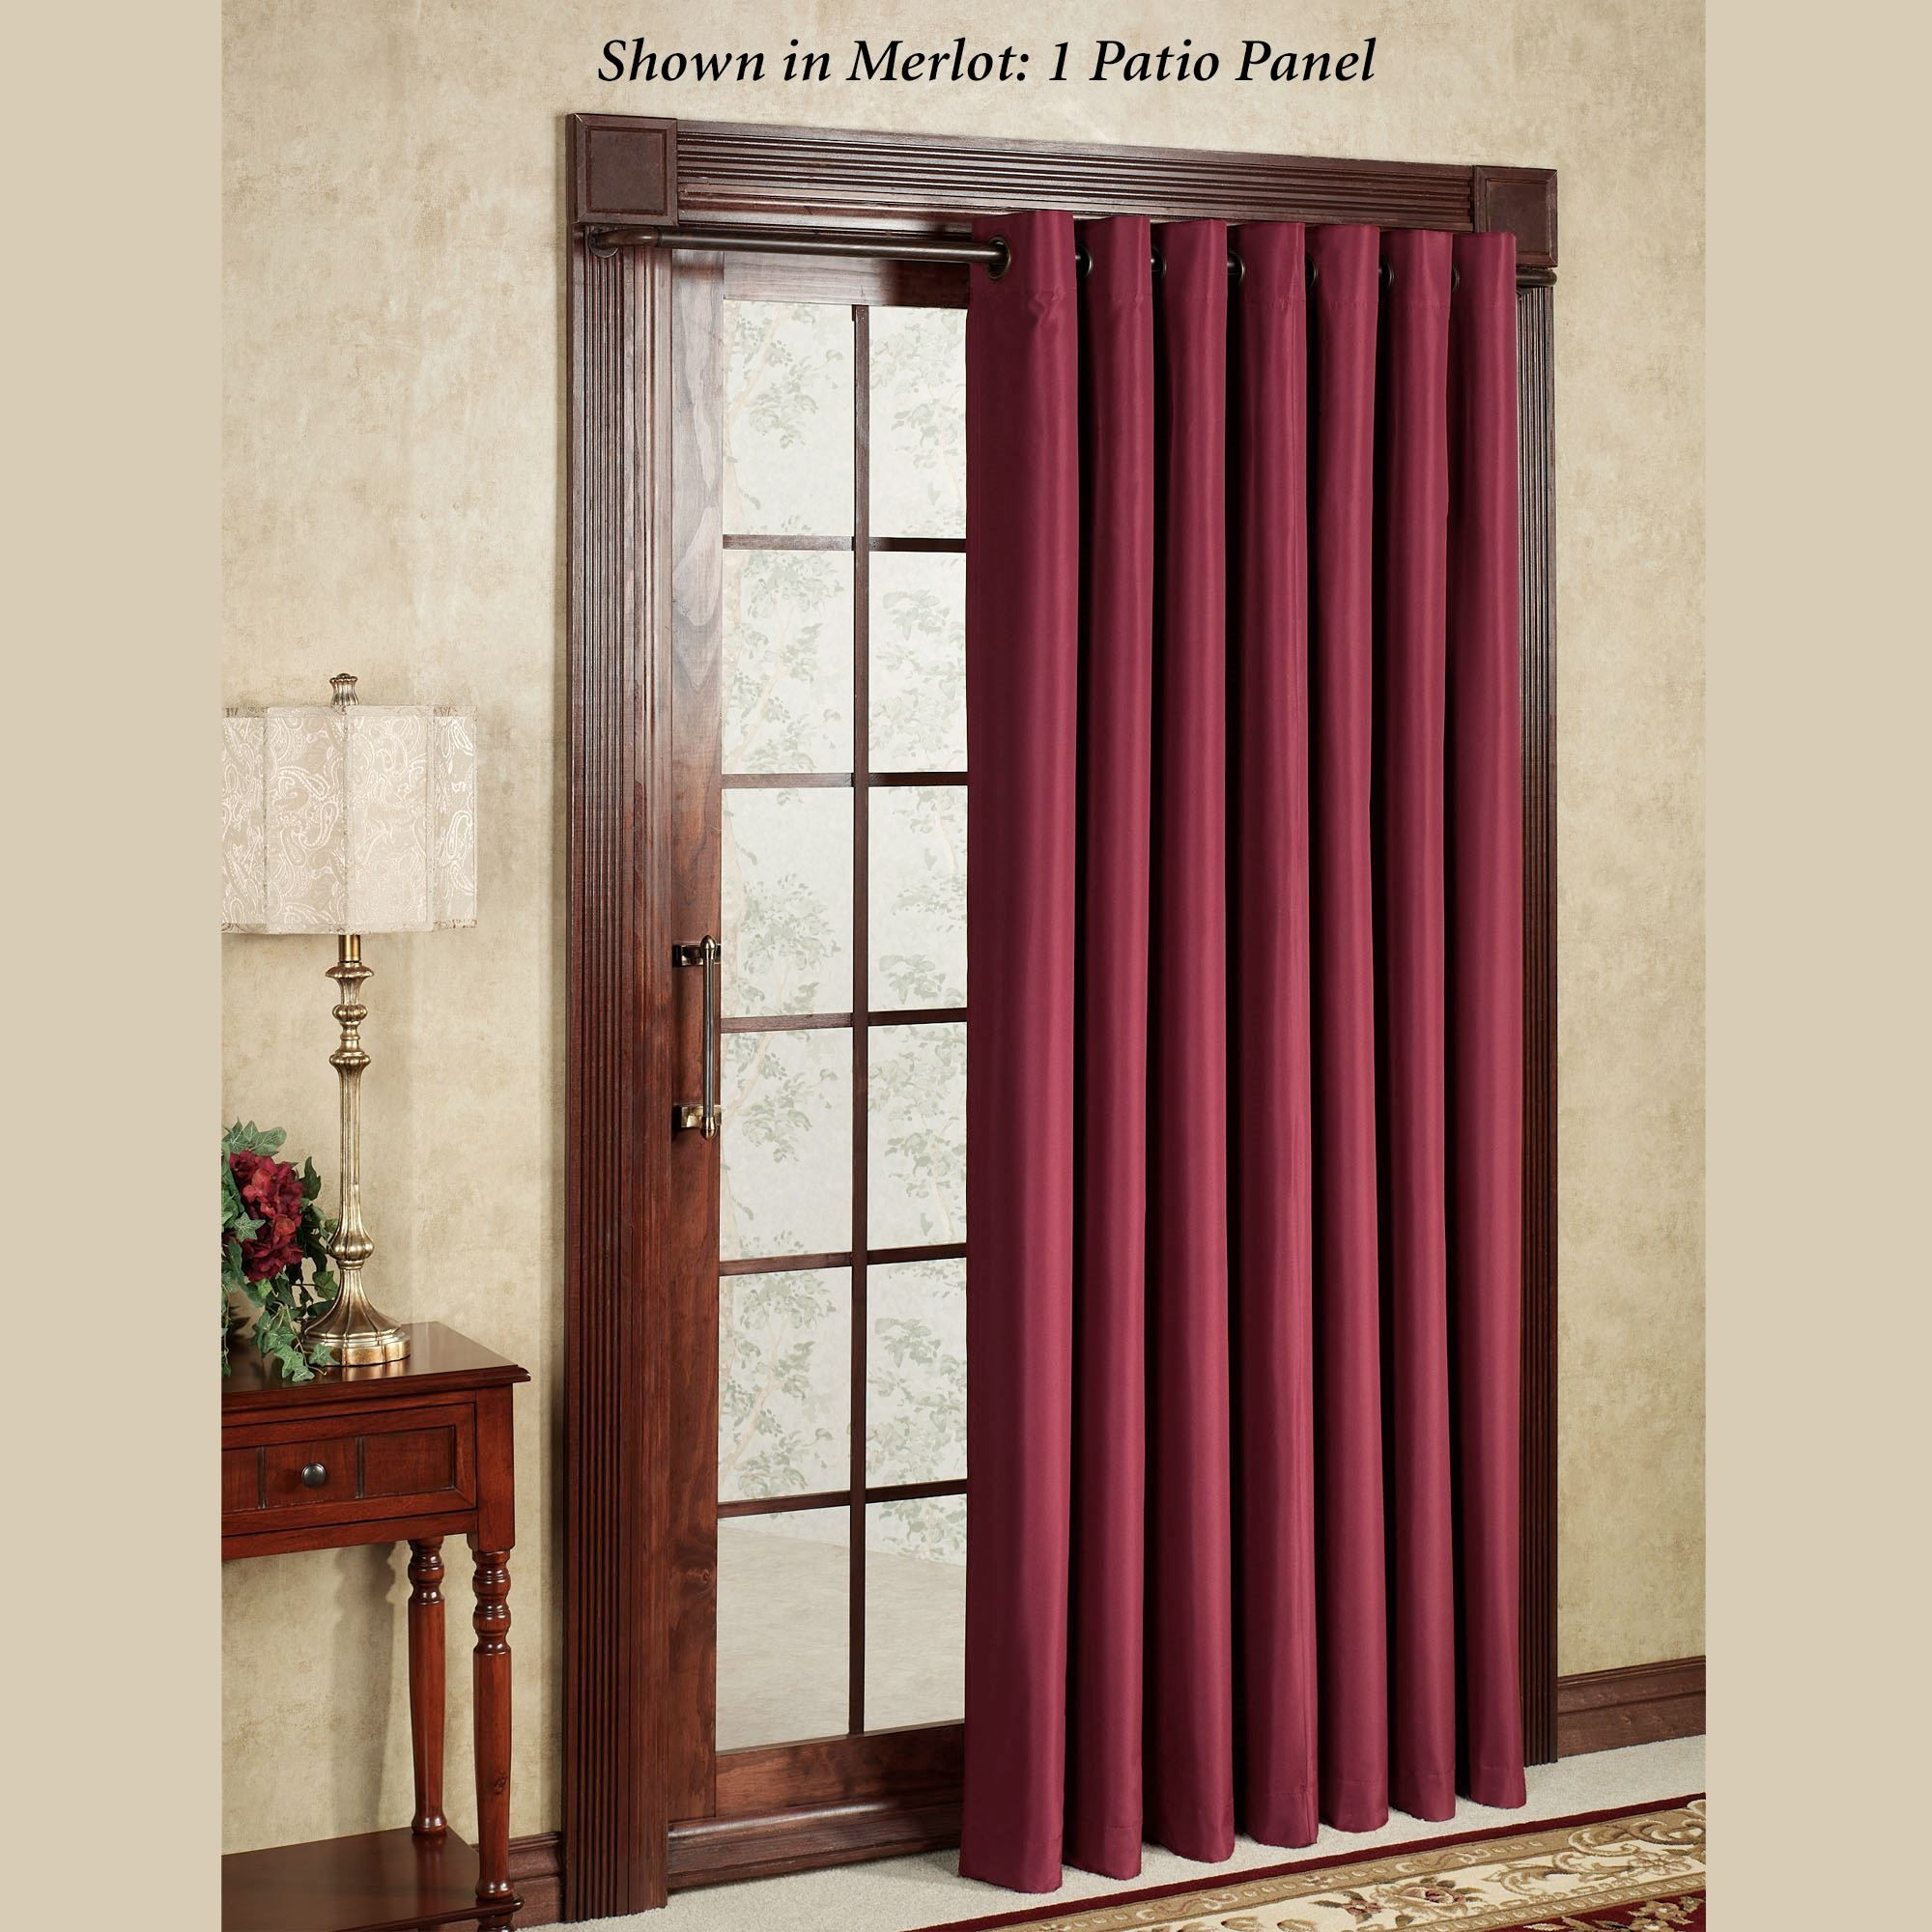 Patio Door Curtains Thecurtainshop pertaining to sizing 1400 X 1279 Thermologic Sliding Track Panels For Patio Doors And Windows Sometimes you don